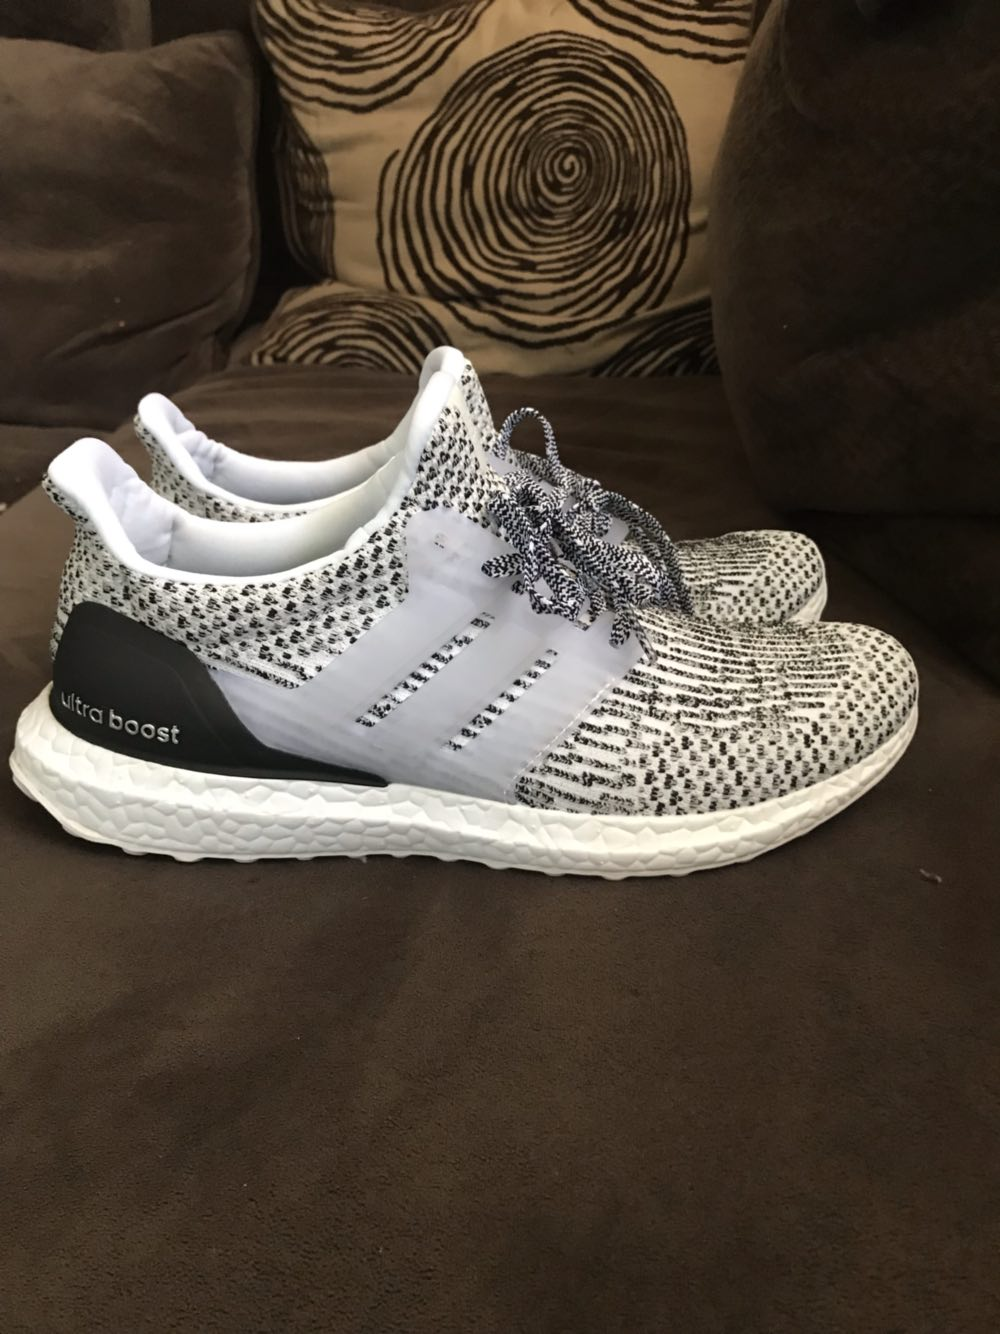 48447cf35 Details about Adidas Ultra Boost 3.0 Shoes Mens Adidas Men Ultraboost  Running Sneakers